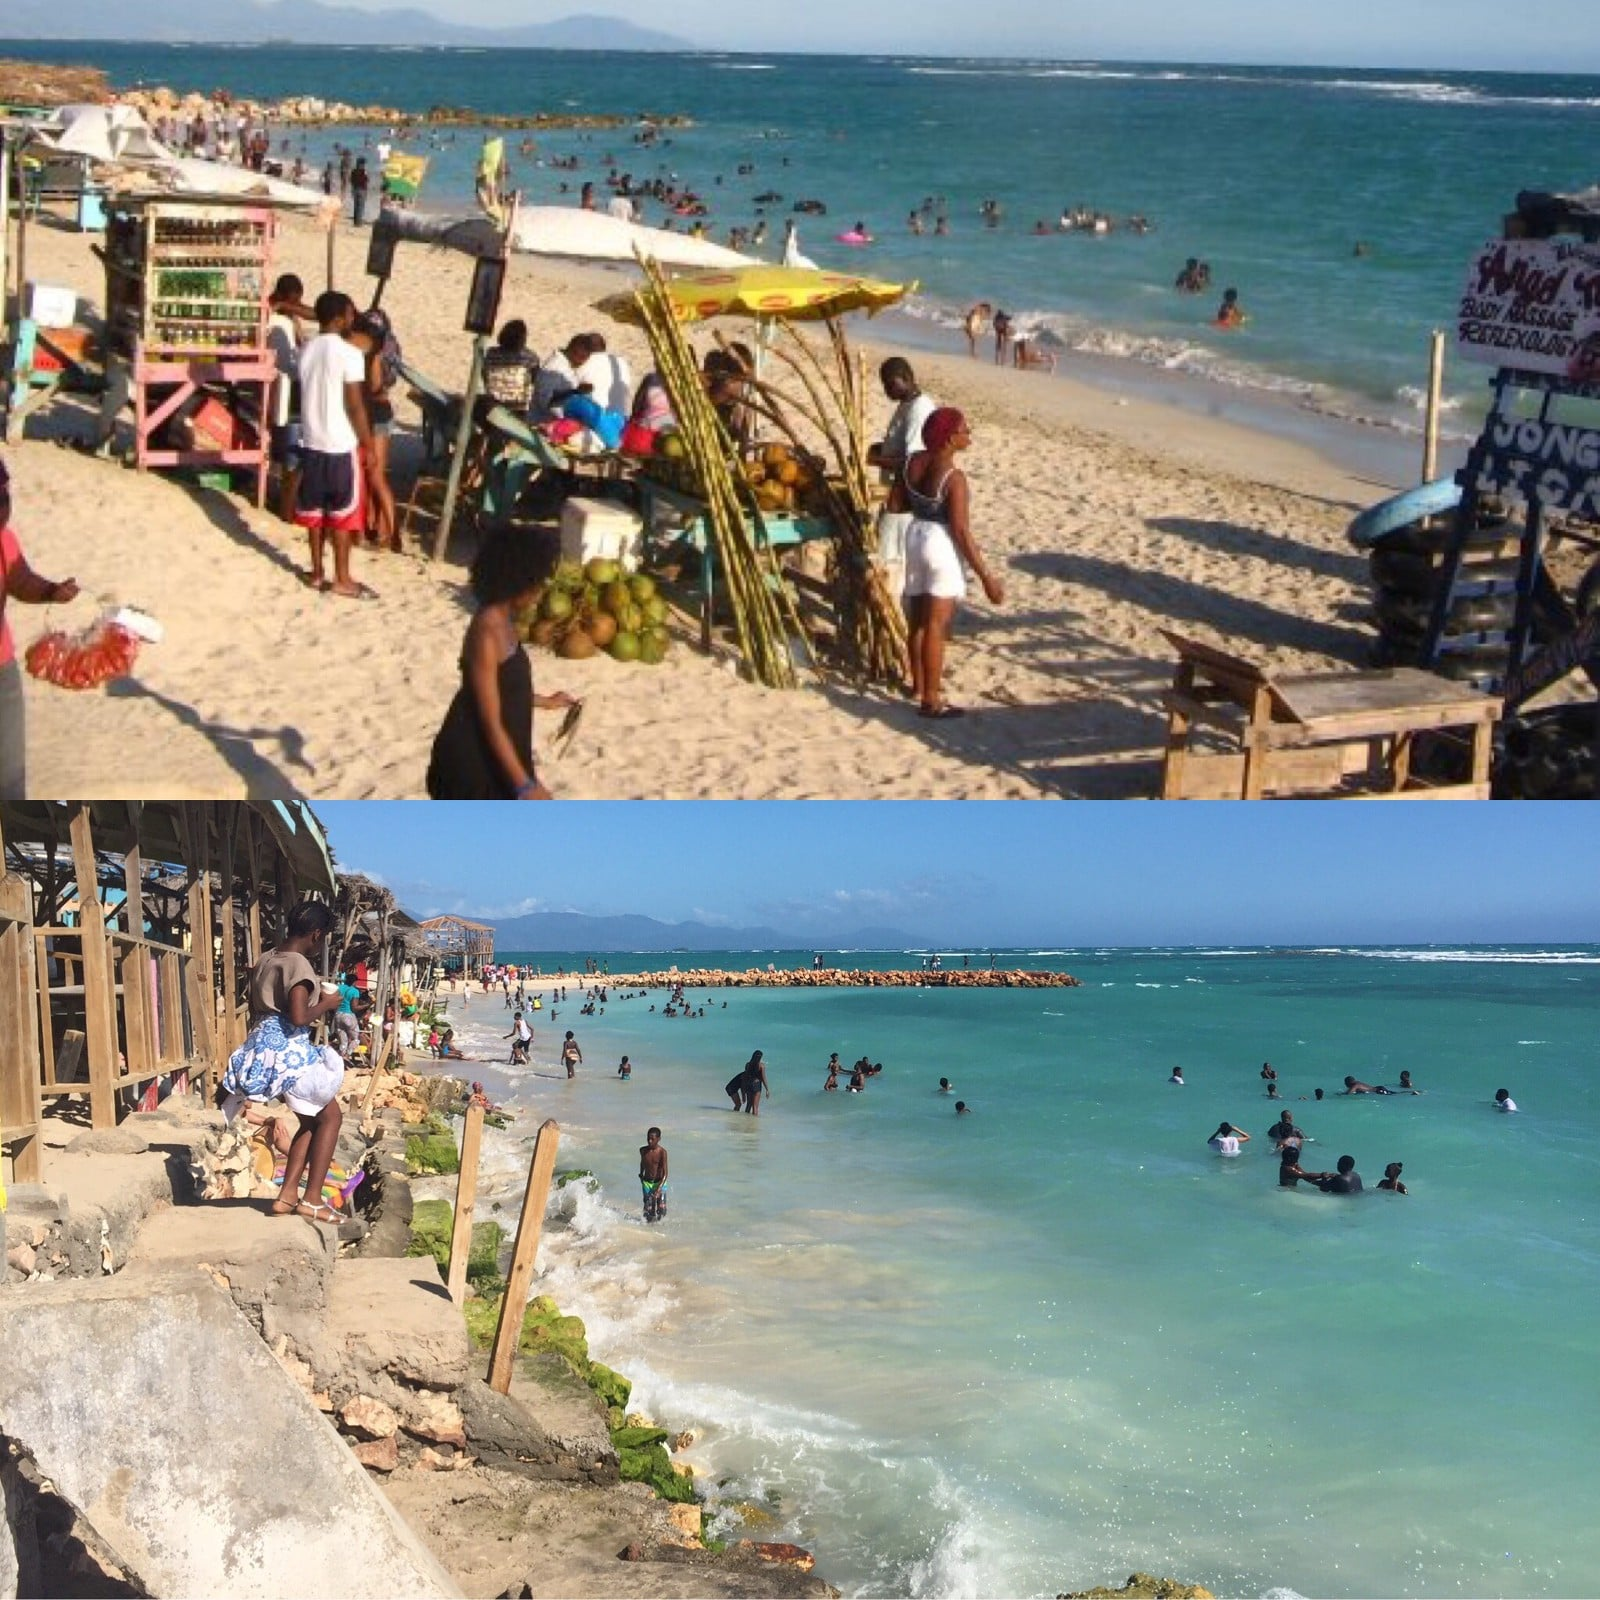 Top, Hellshire Beach, January 2009, taken by Kamilah Taylor. Bottom, Hellshire Beach, January 2016, taken by  Gabrielle Taylor . Both photos taken at Prendy's.